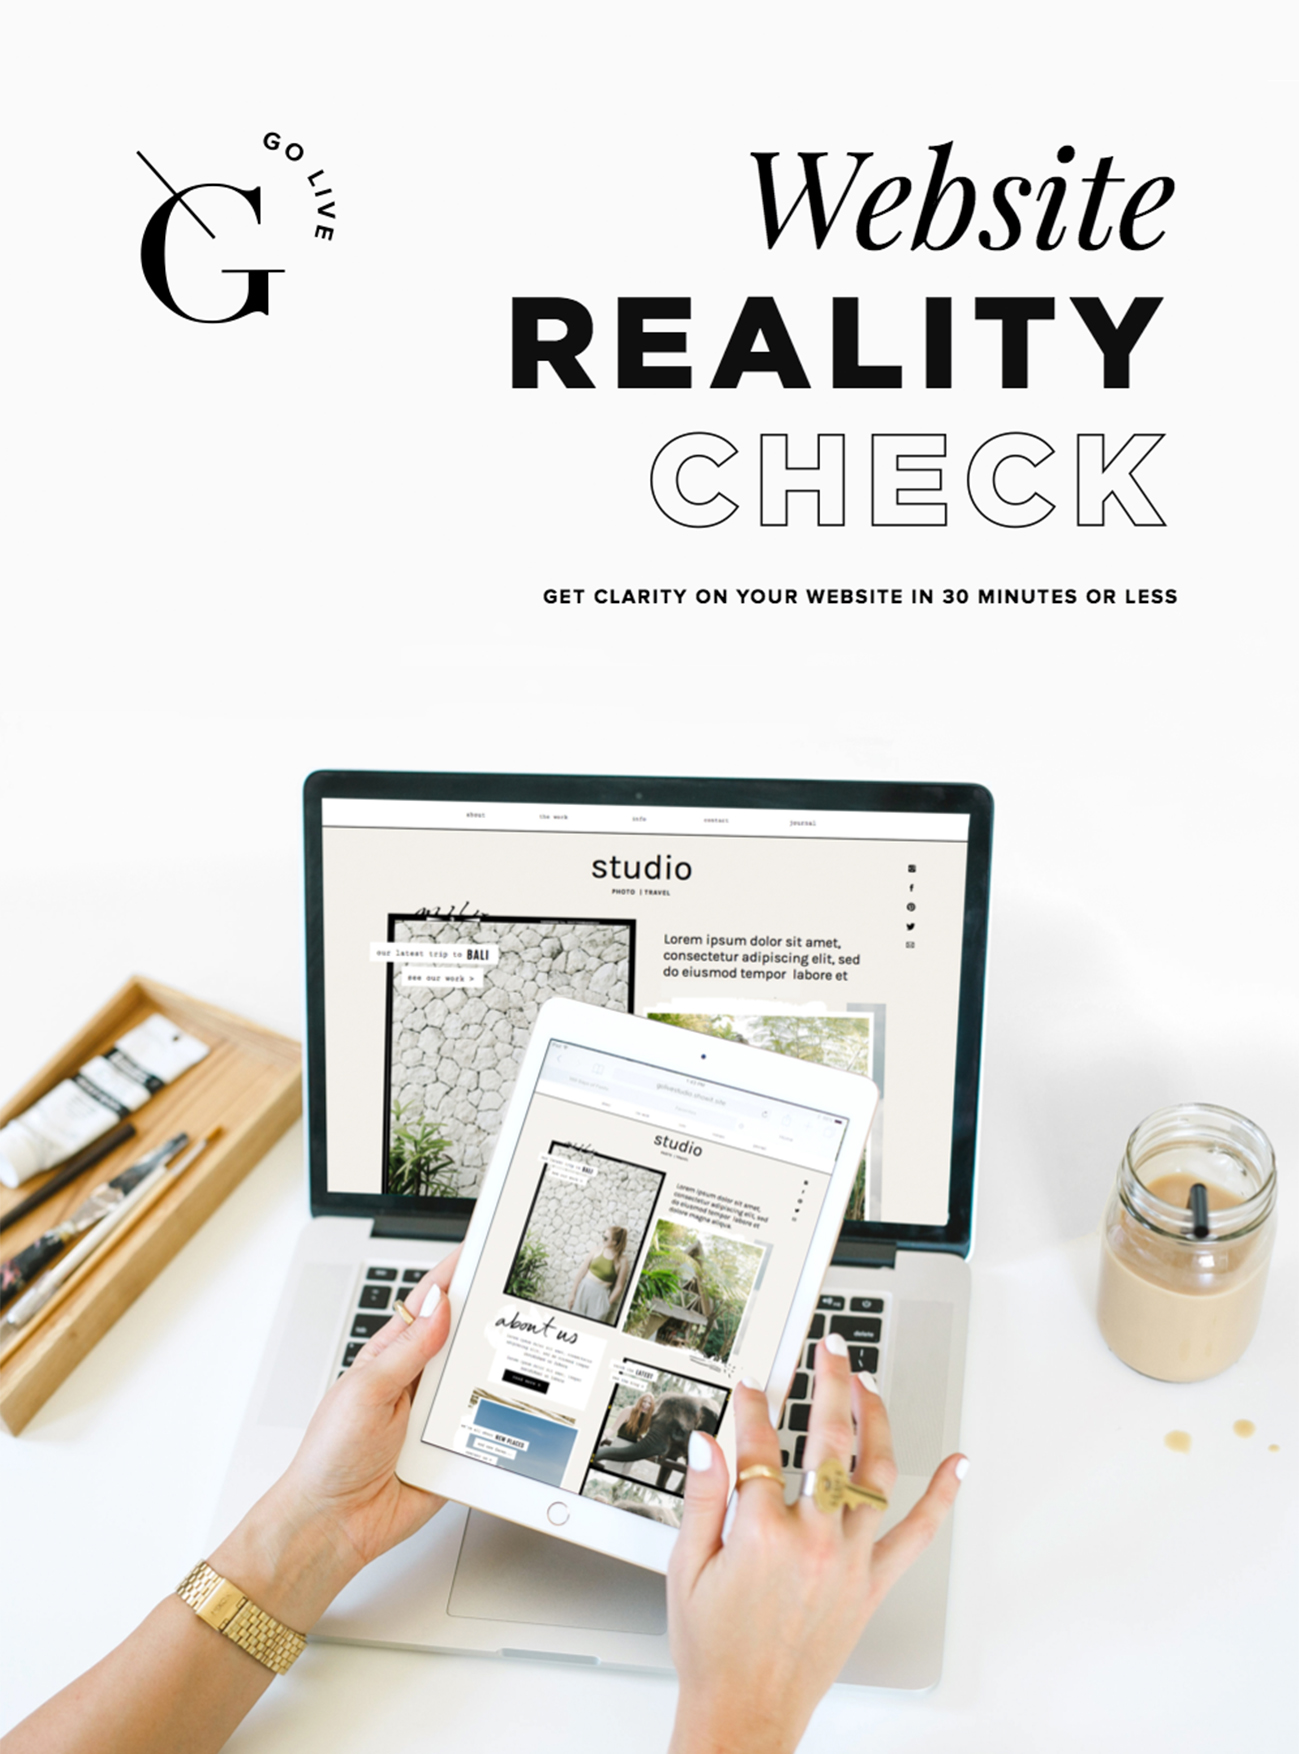 Our Best Tool For Evaluation Your Site: The Website Reality Check | By Go Live HQ